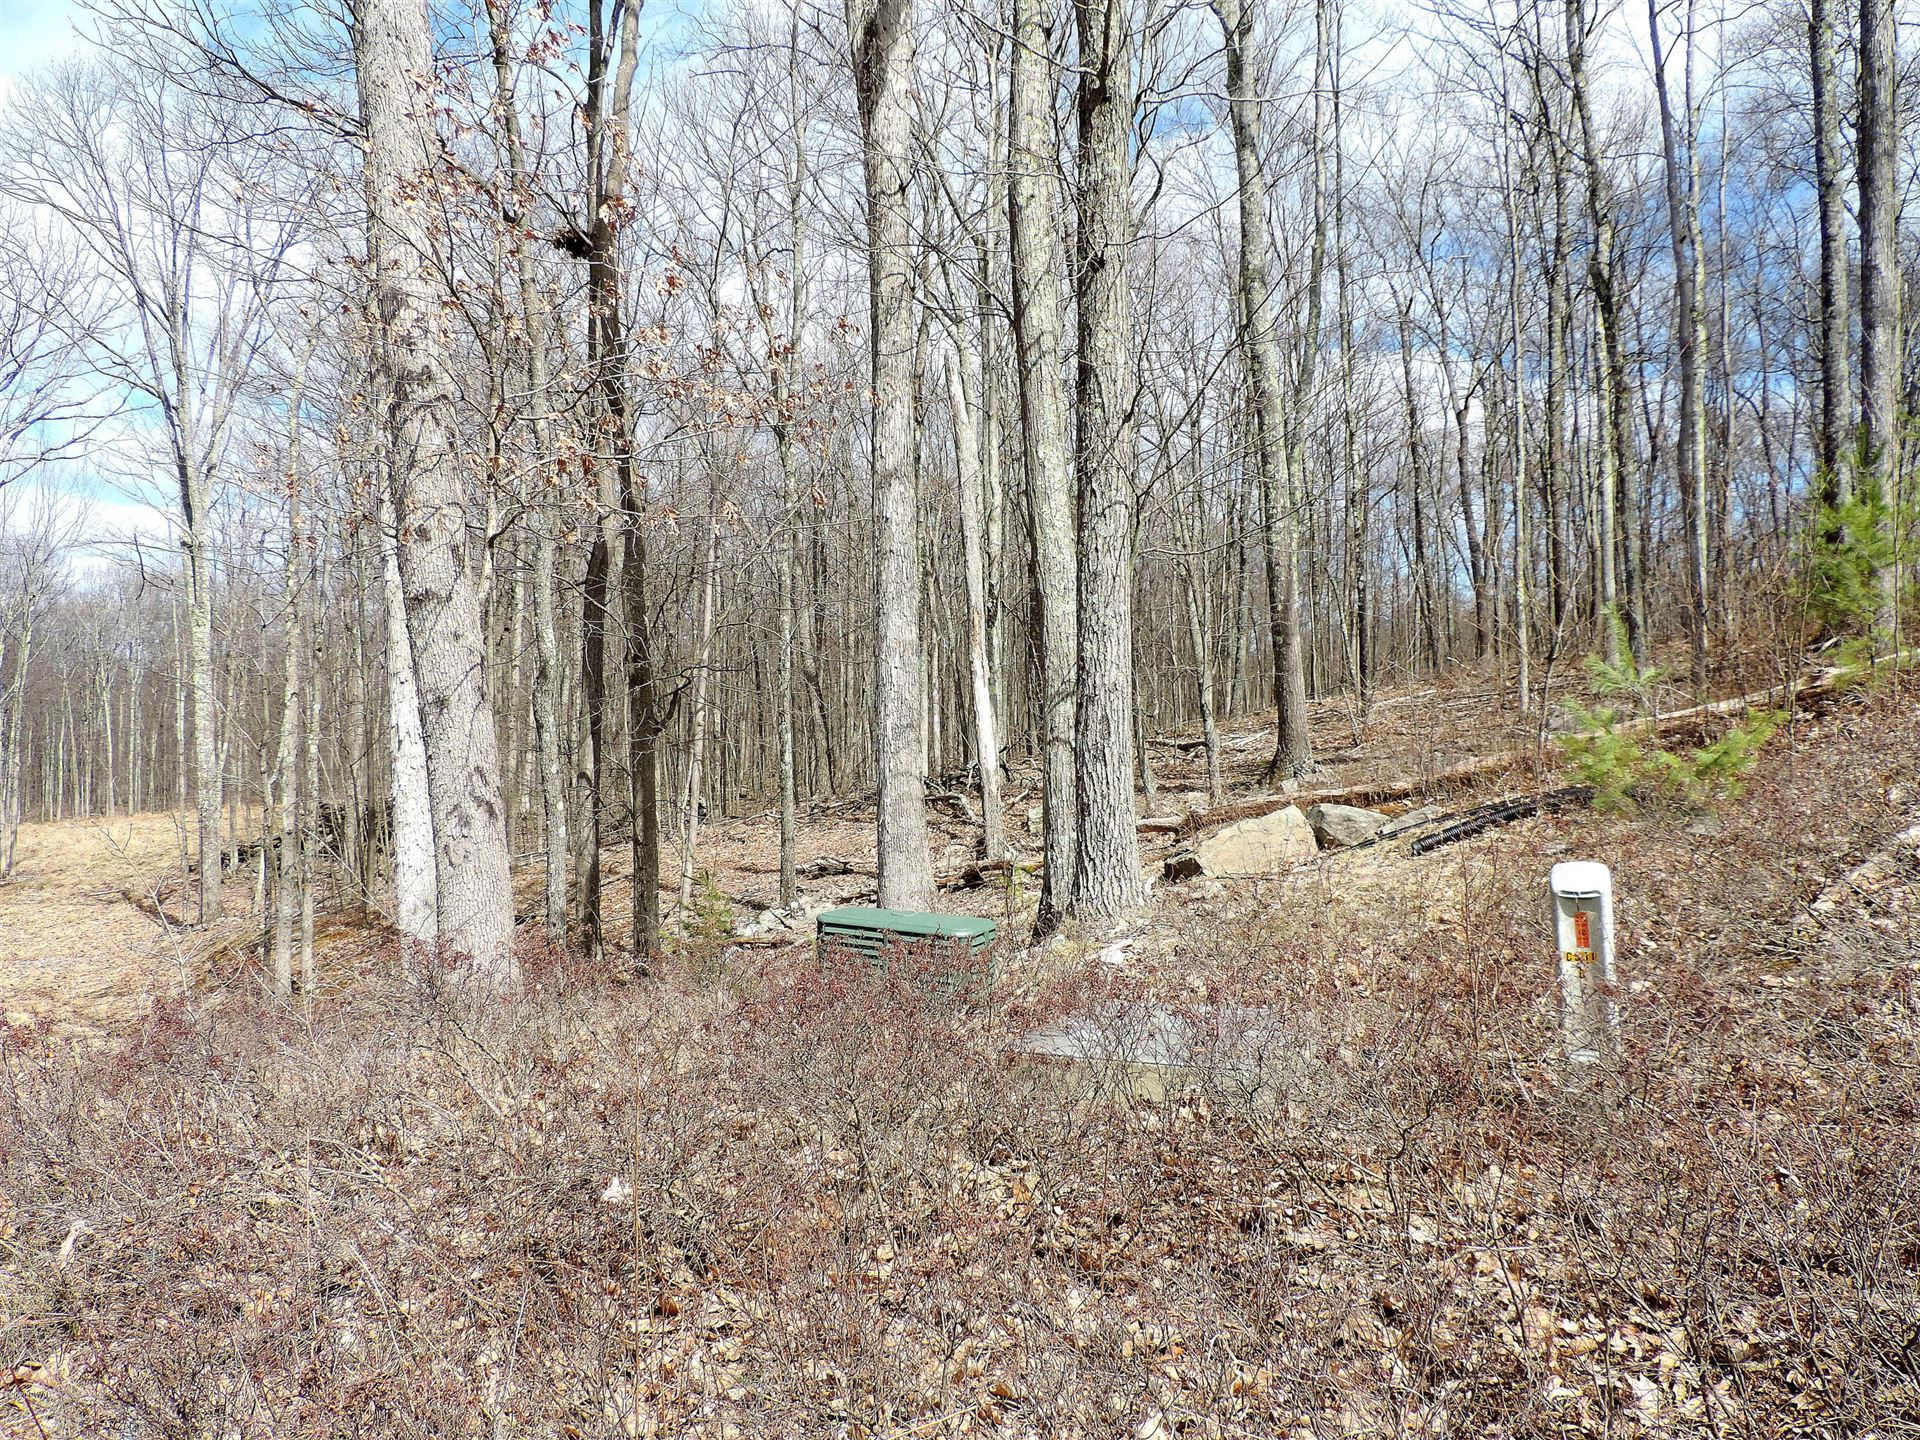 Photo of Lot #141 Wedgewood Dr, Hawley, PA 18428 (MLS # 20-1152)